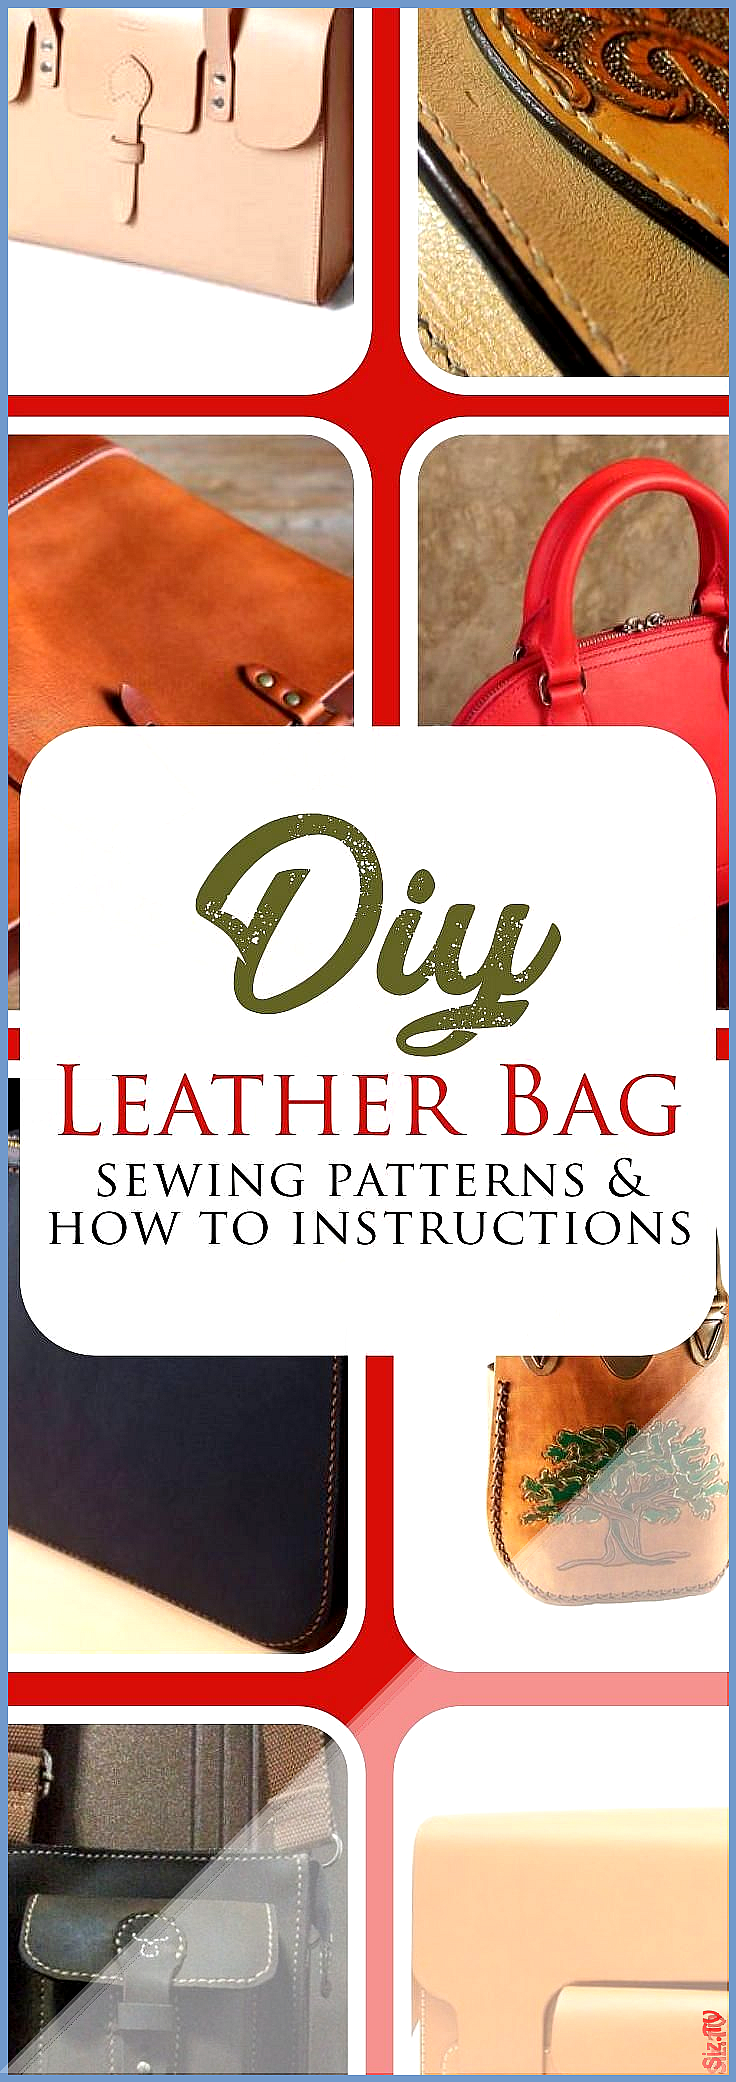 How to Make a Leather Bag How to Make a Leather Bag Terry Underhill Save Images Terry Underhill Discover how to make your very own DIY leather handbag How to Make a Leath...